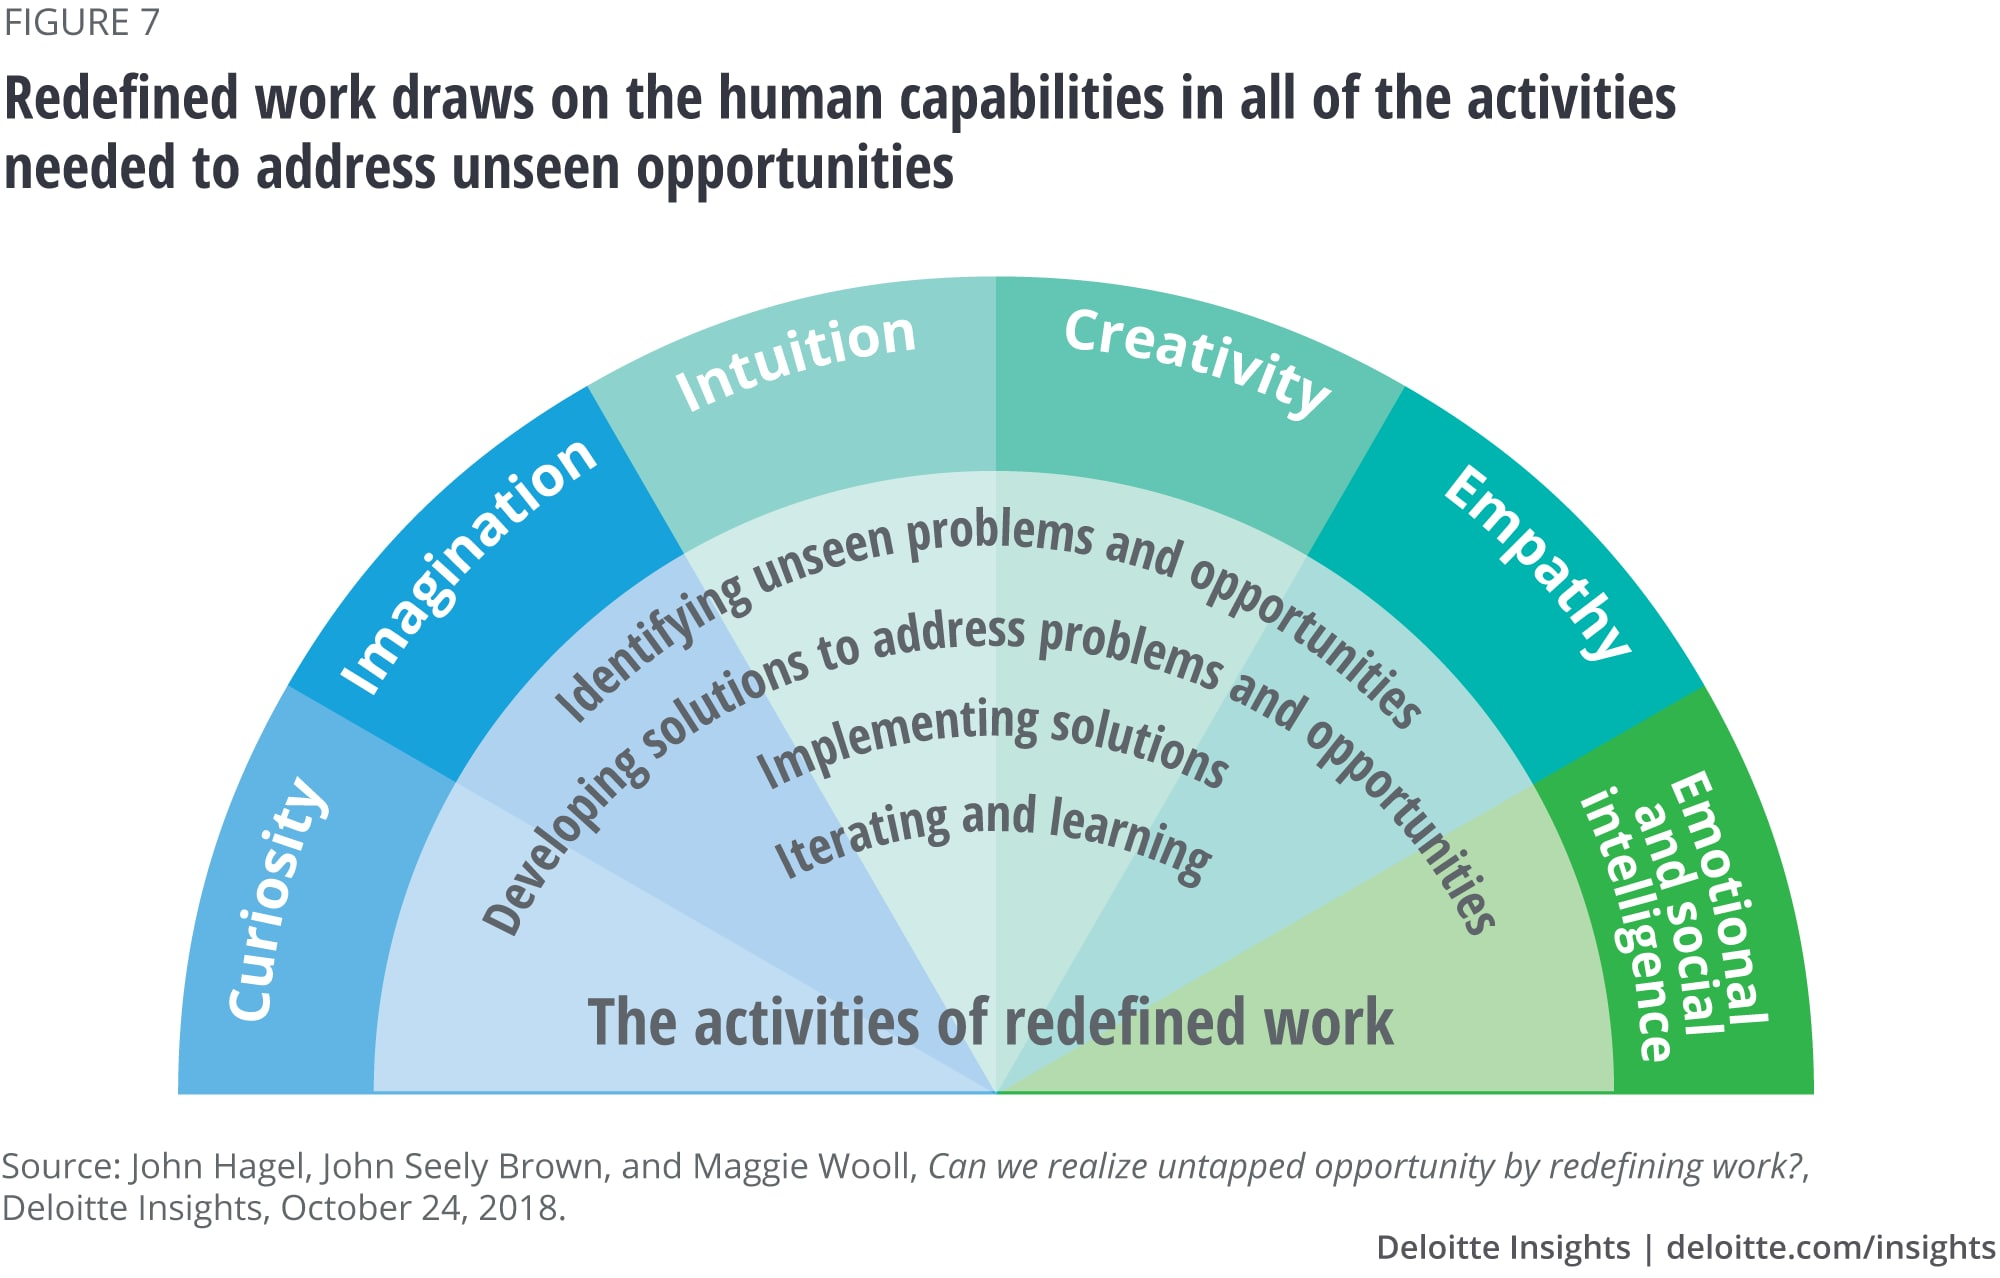 Uniquely human capabilities have a huge bearing on redefined work